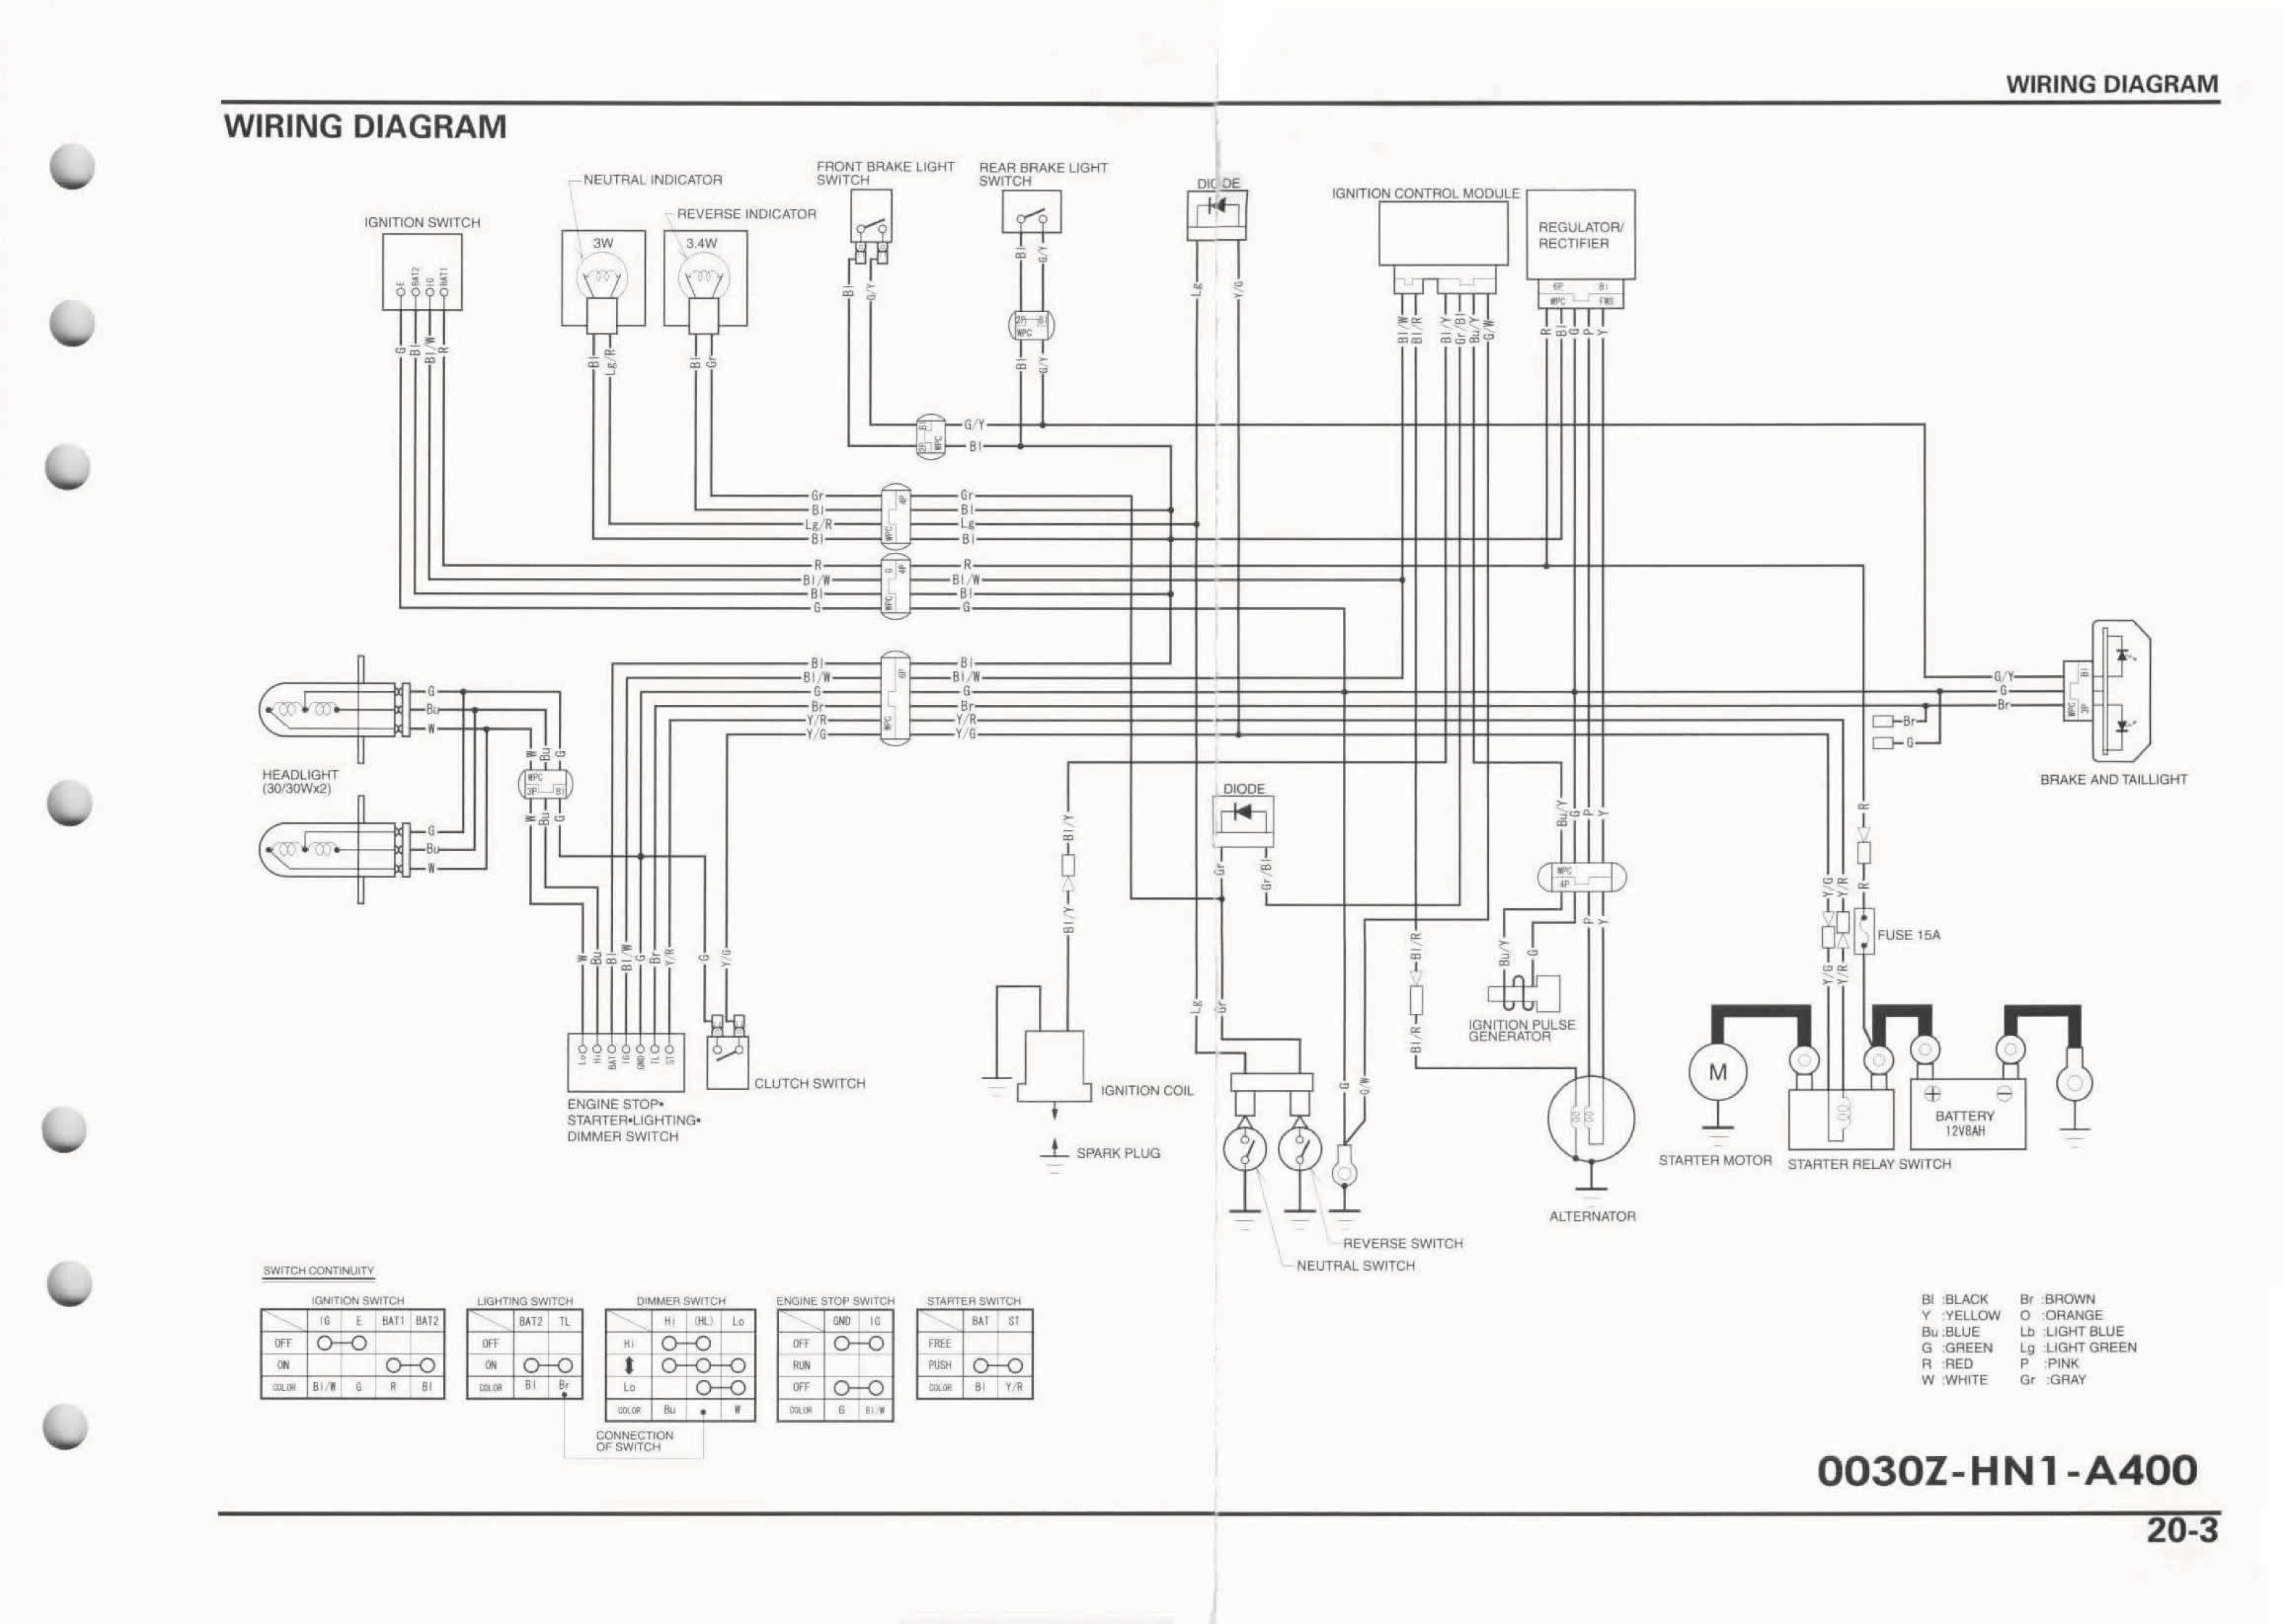 Xr600 Wiring Diagram